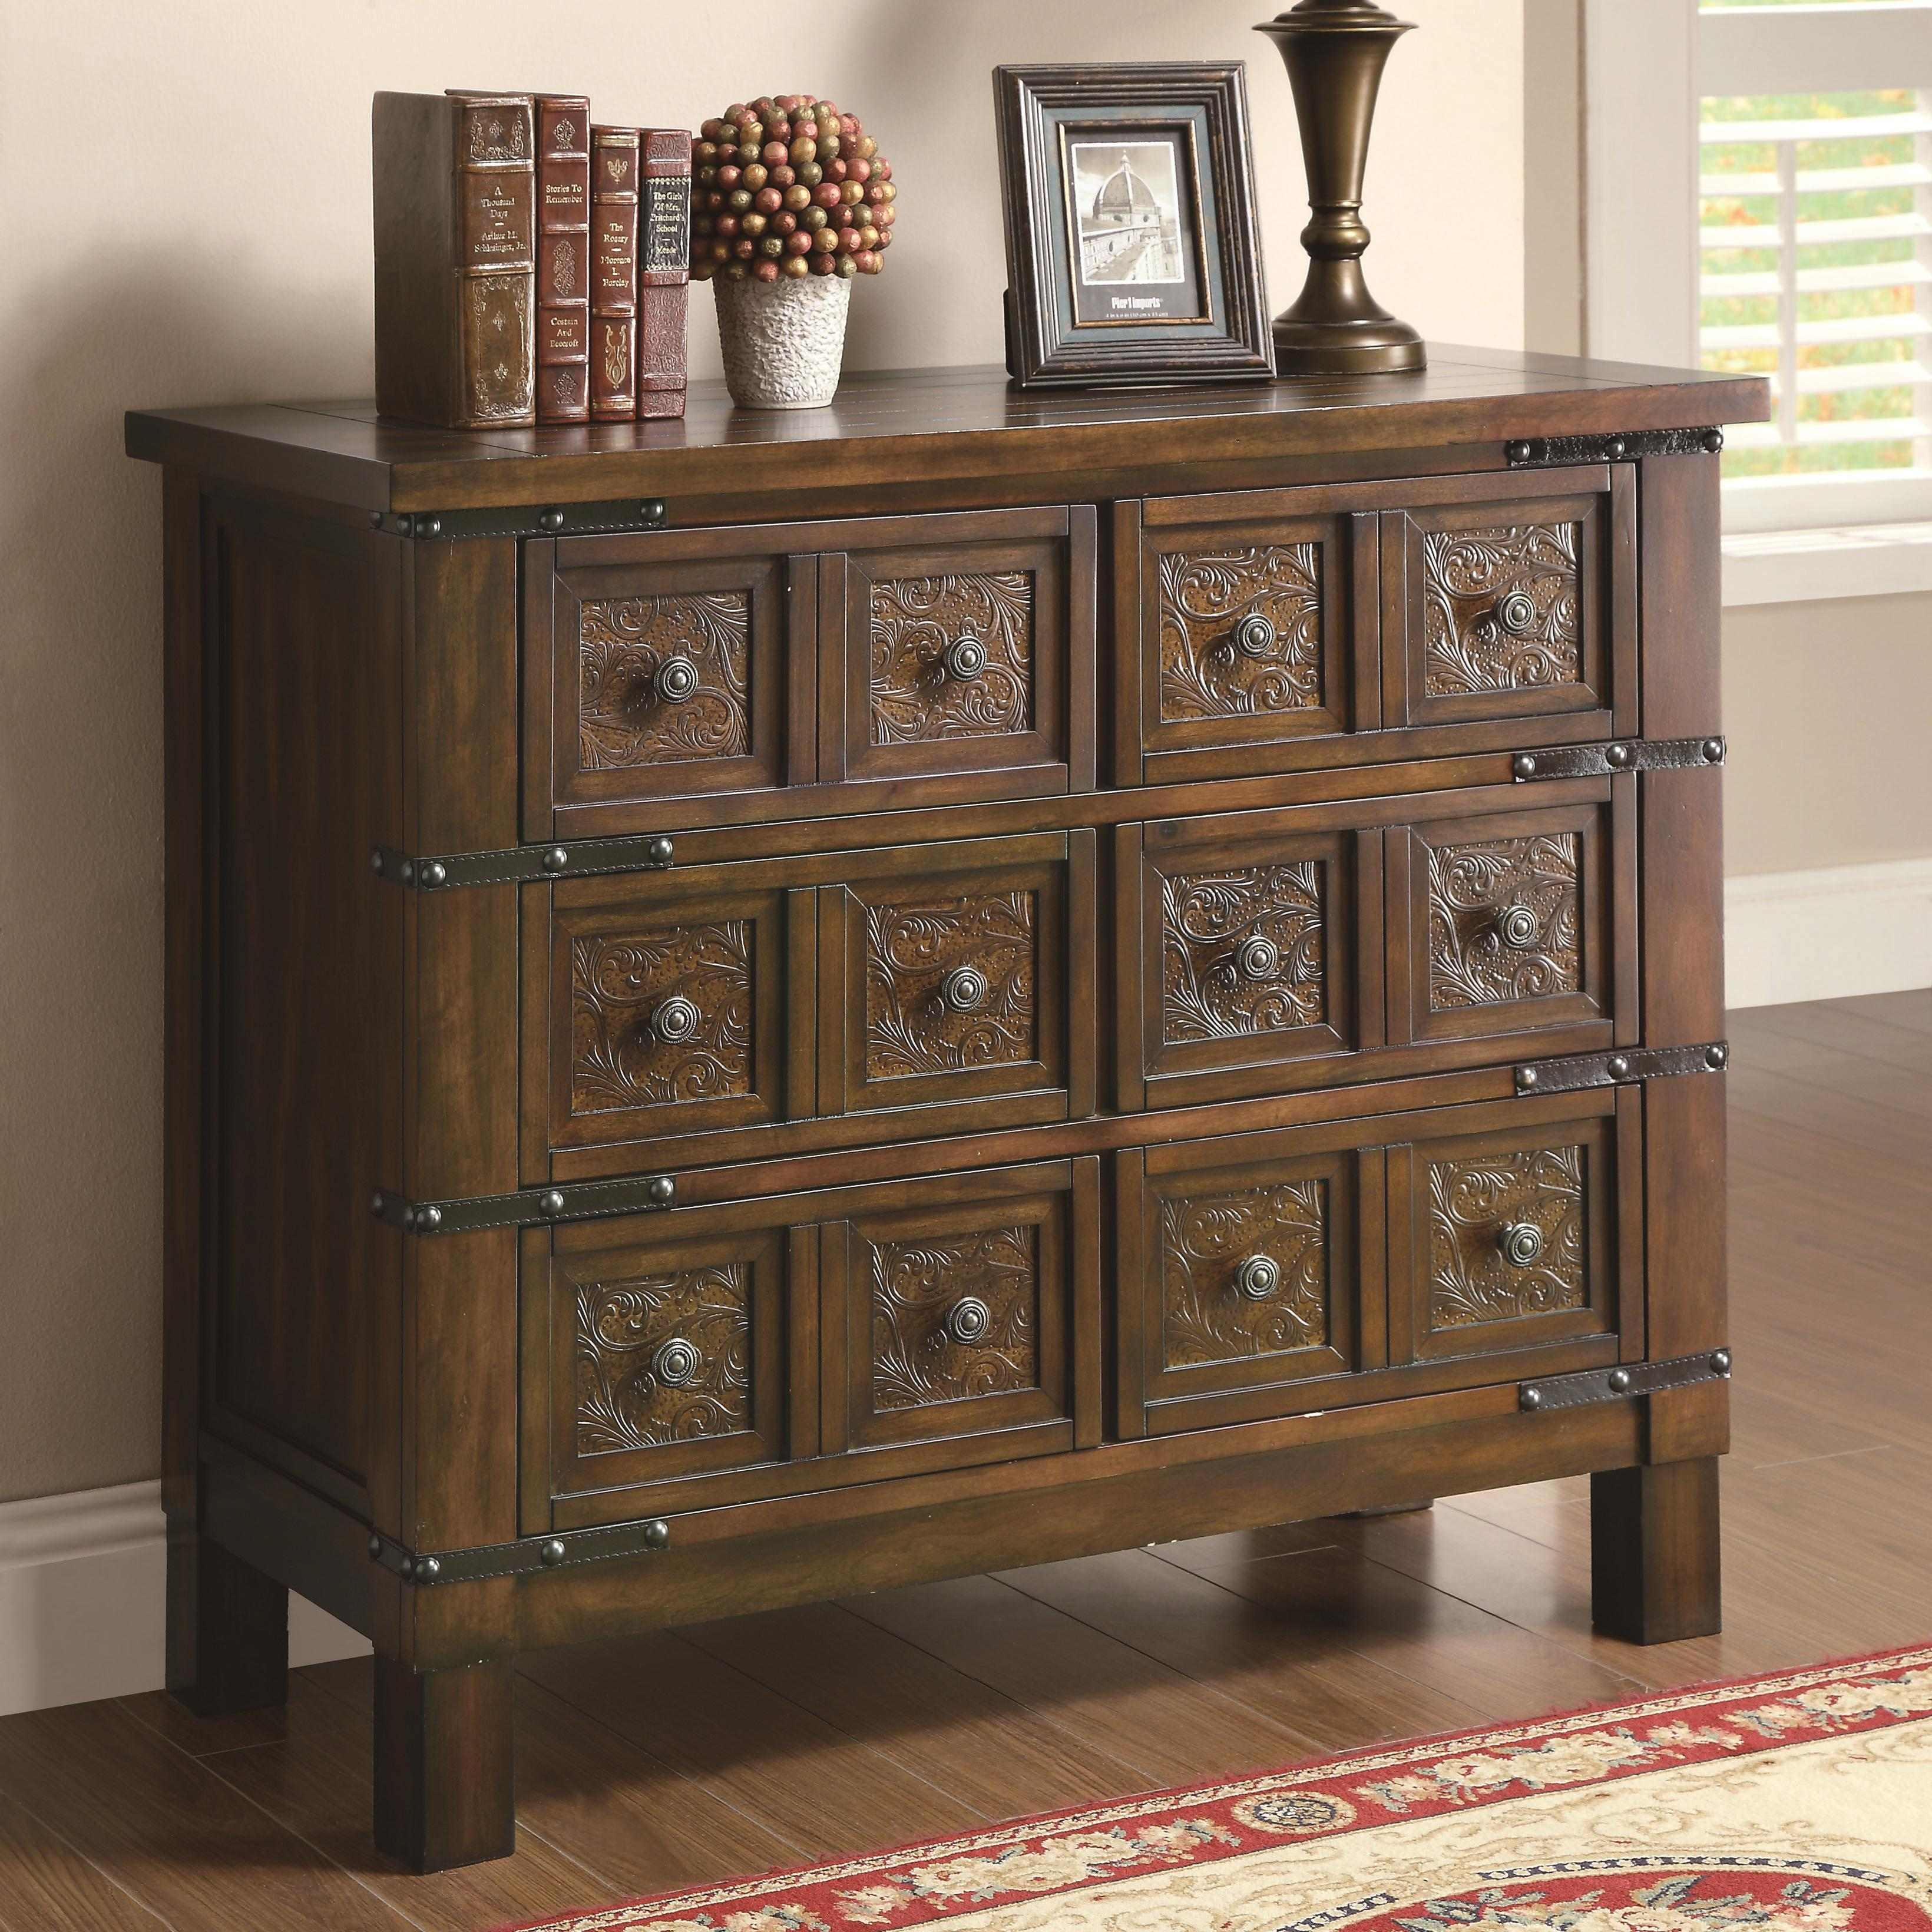 mirrored cabinet green ansley bar glass table colored file curio wine swivel cabinets accent shoe furniture coaster dark kitchen corner grey painted groove filing teal